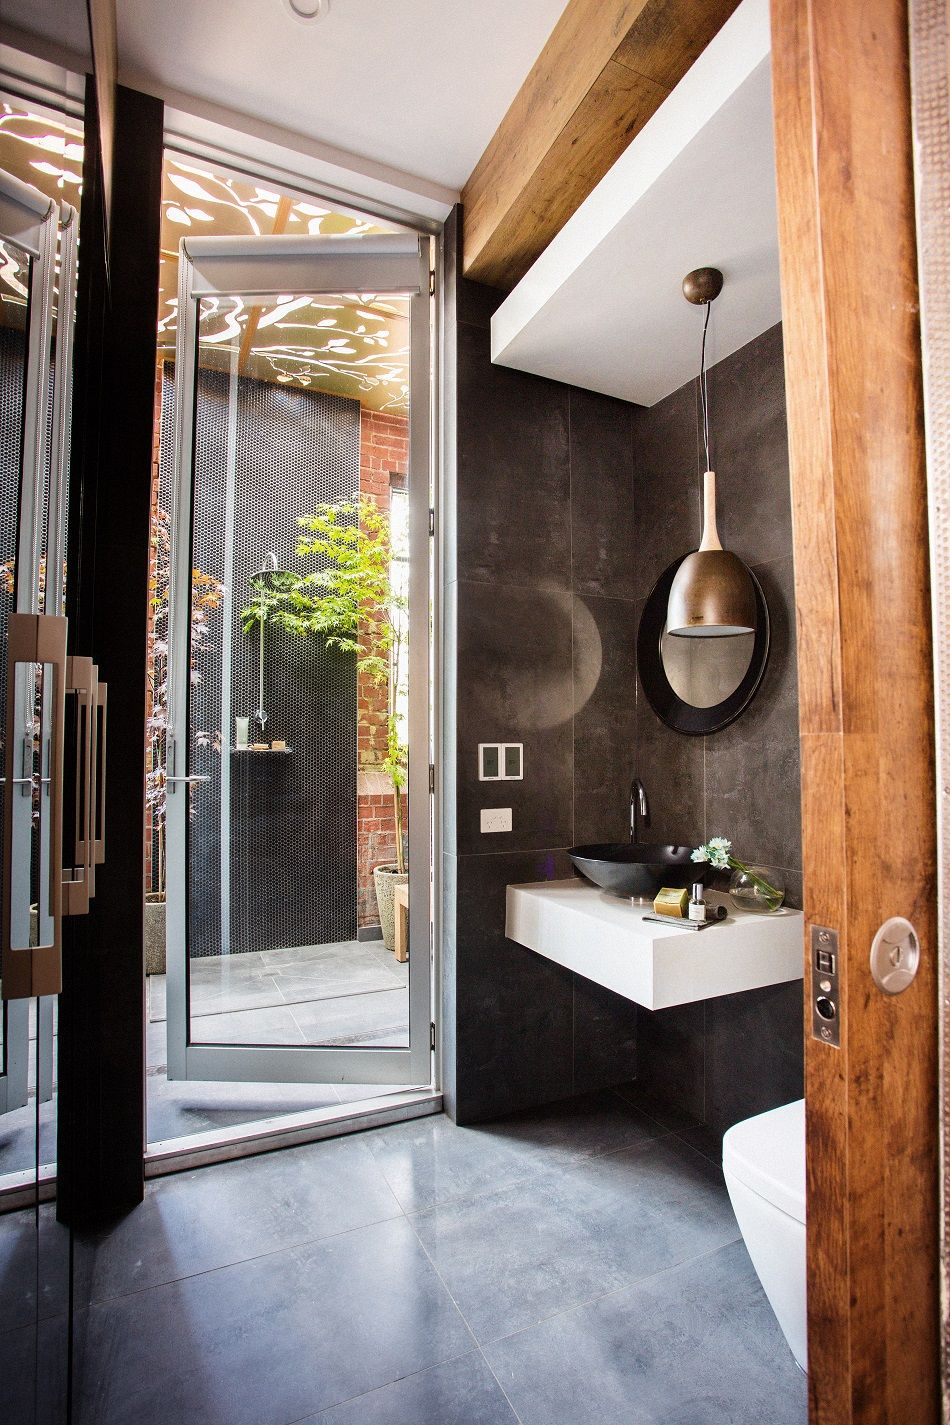 This Stylish Terrace And Bathroom Appeared On The Block Fans Vs Faves It Features The Matte Black Stylish Bathroom Beaumont Tiles Interior Design Living Room